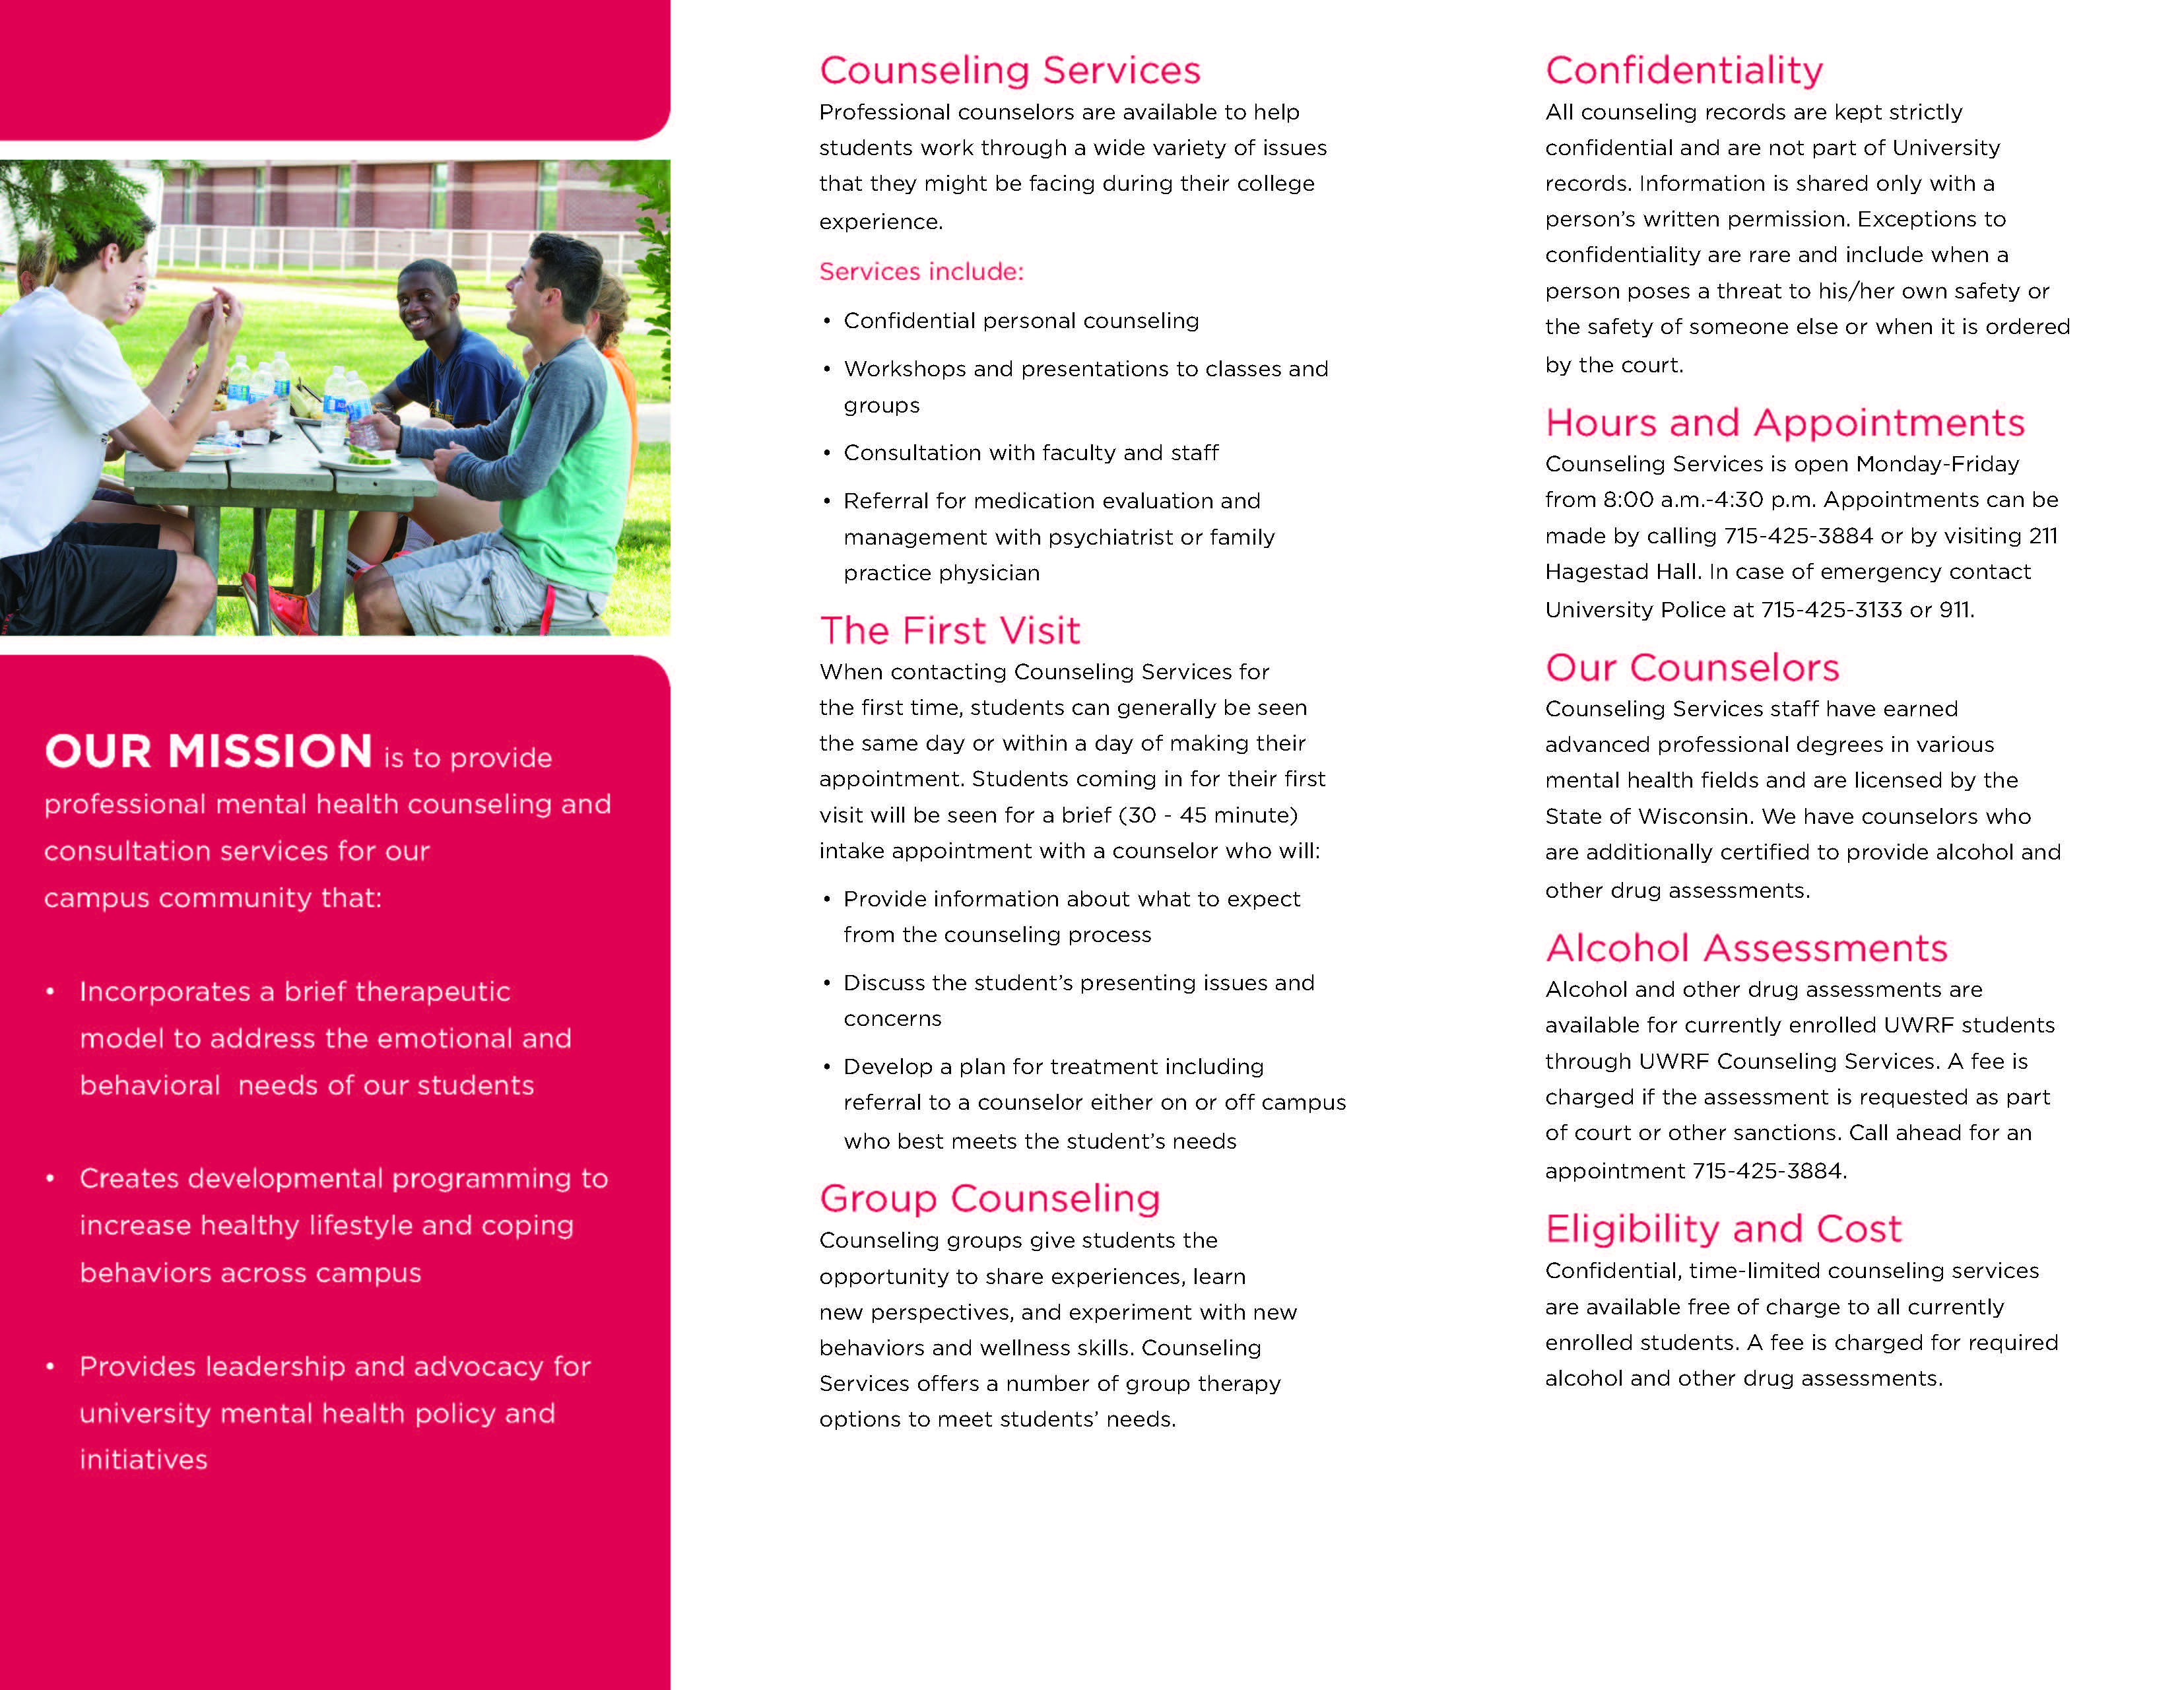 Counseling Services Brochure | University of Wisconsin ...